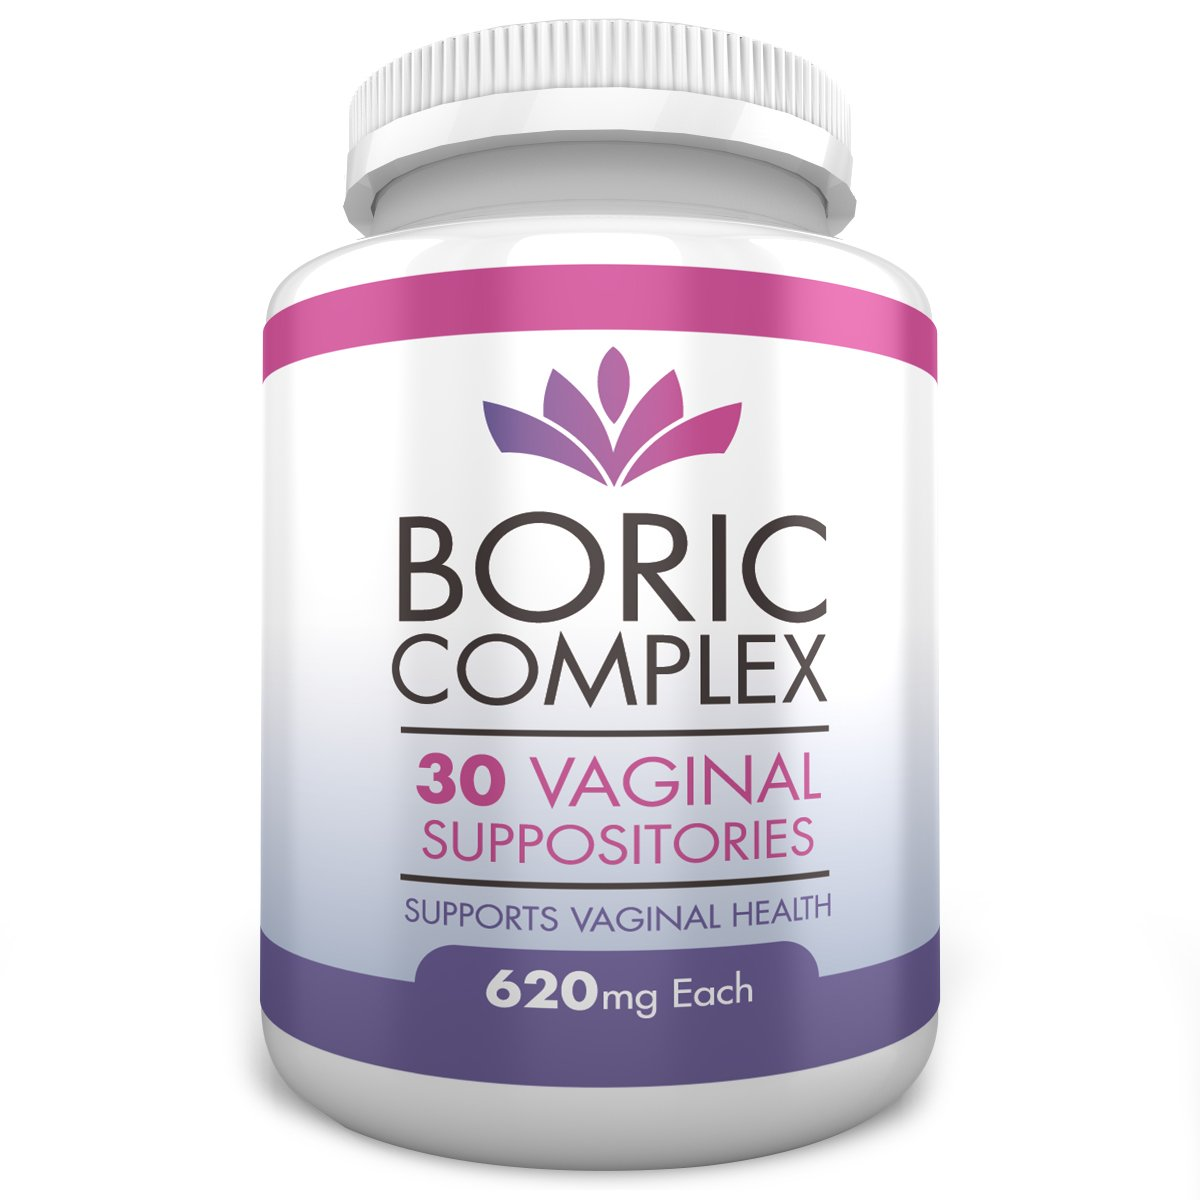 Boric Acid Vaginal Suppositories 620mg Formula - Natural With Soothing Marigold Flower Extract, 30 Count